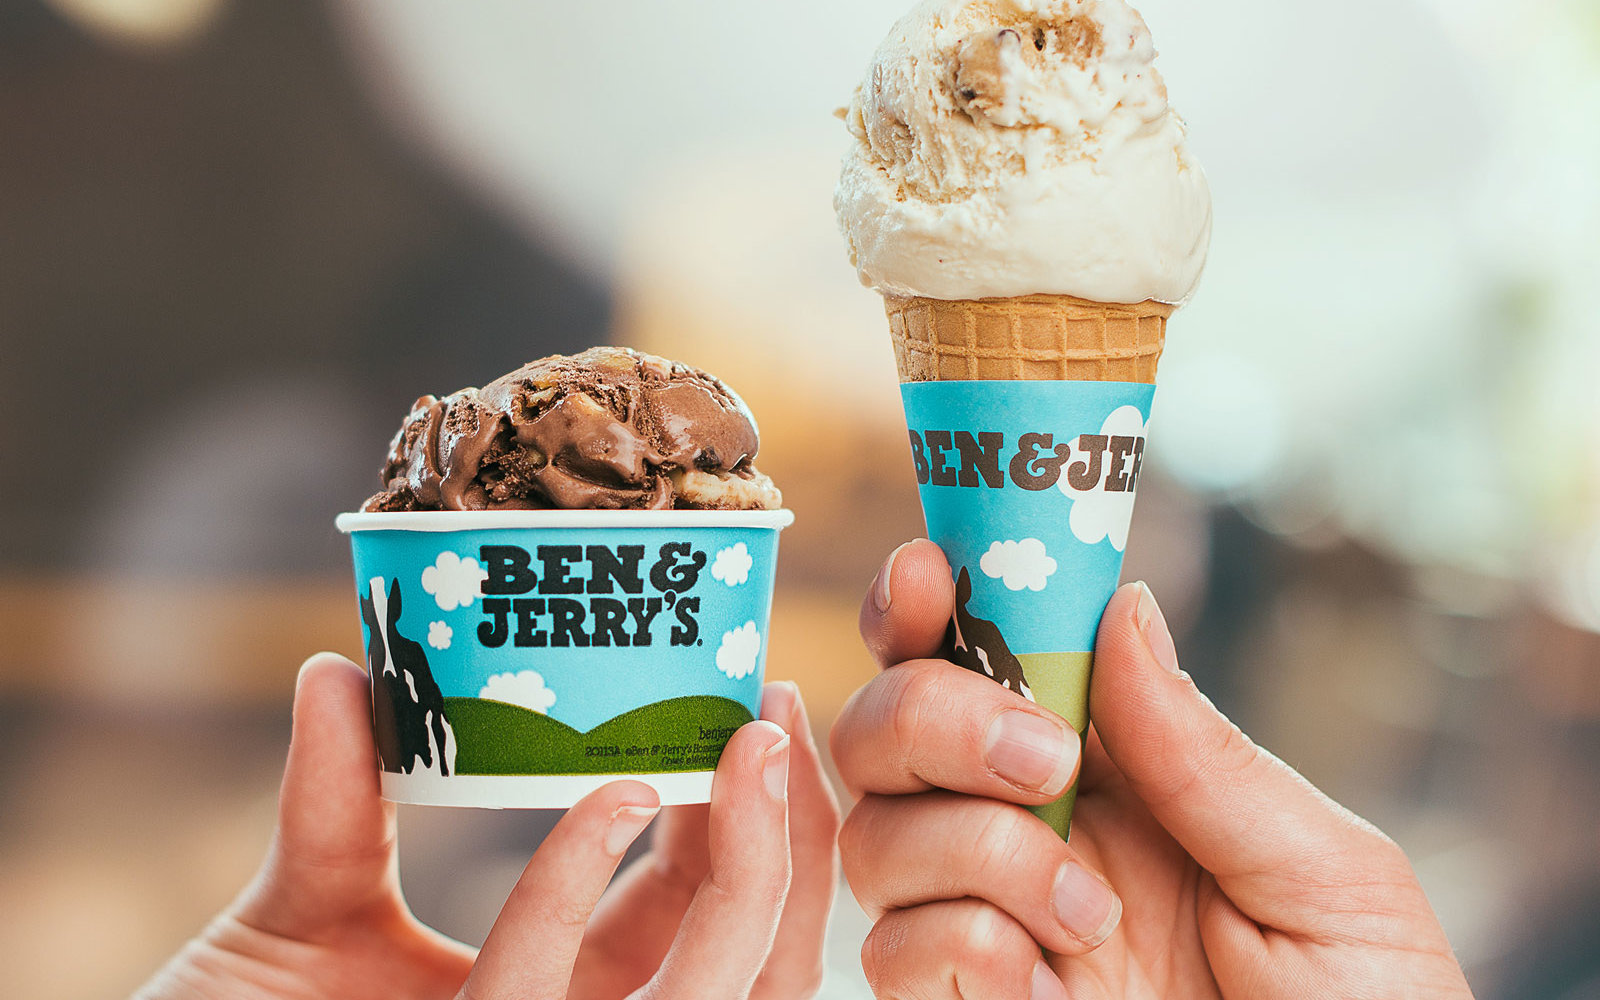 Here's When You Can Get Free Ice Cream at Ben & Jerry's